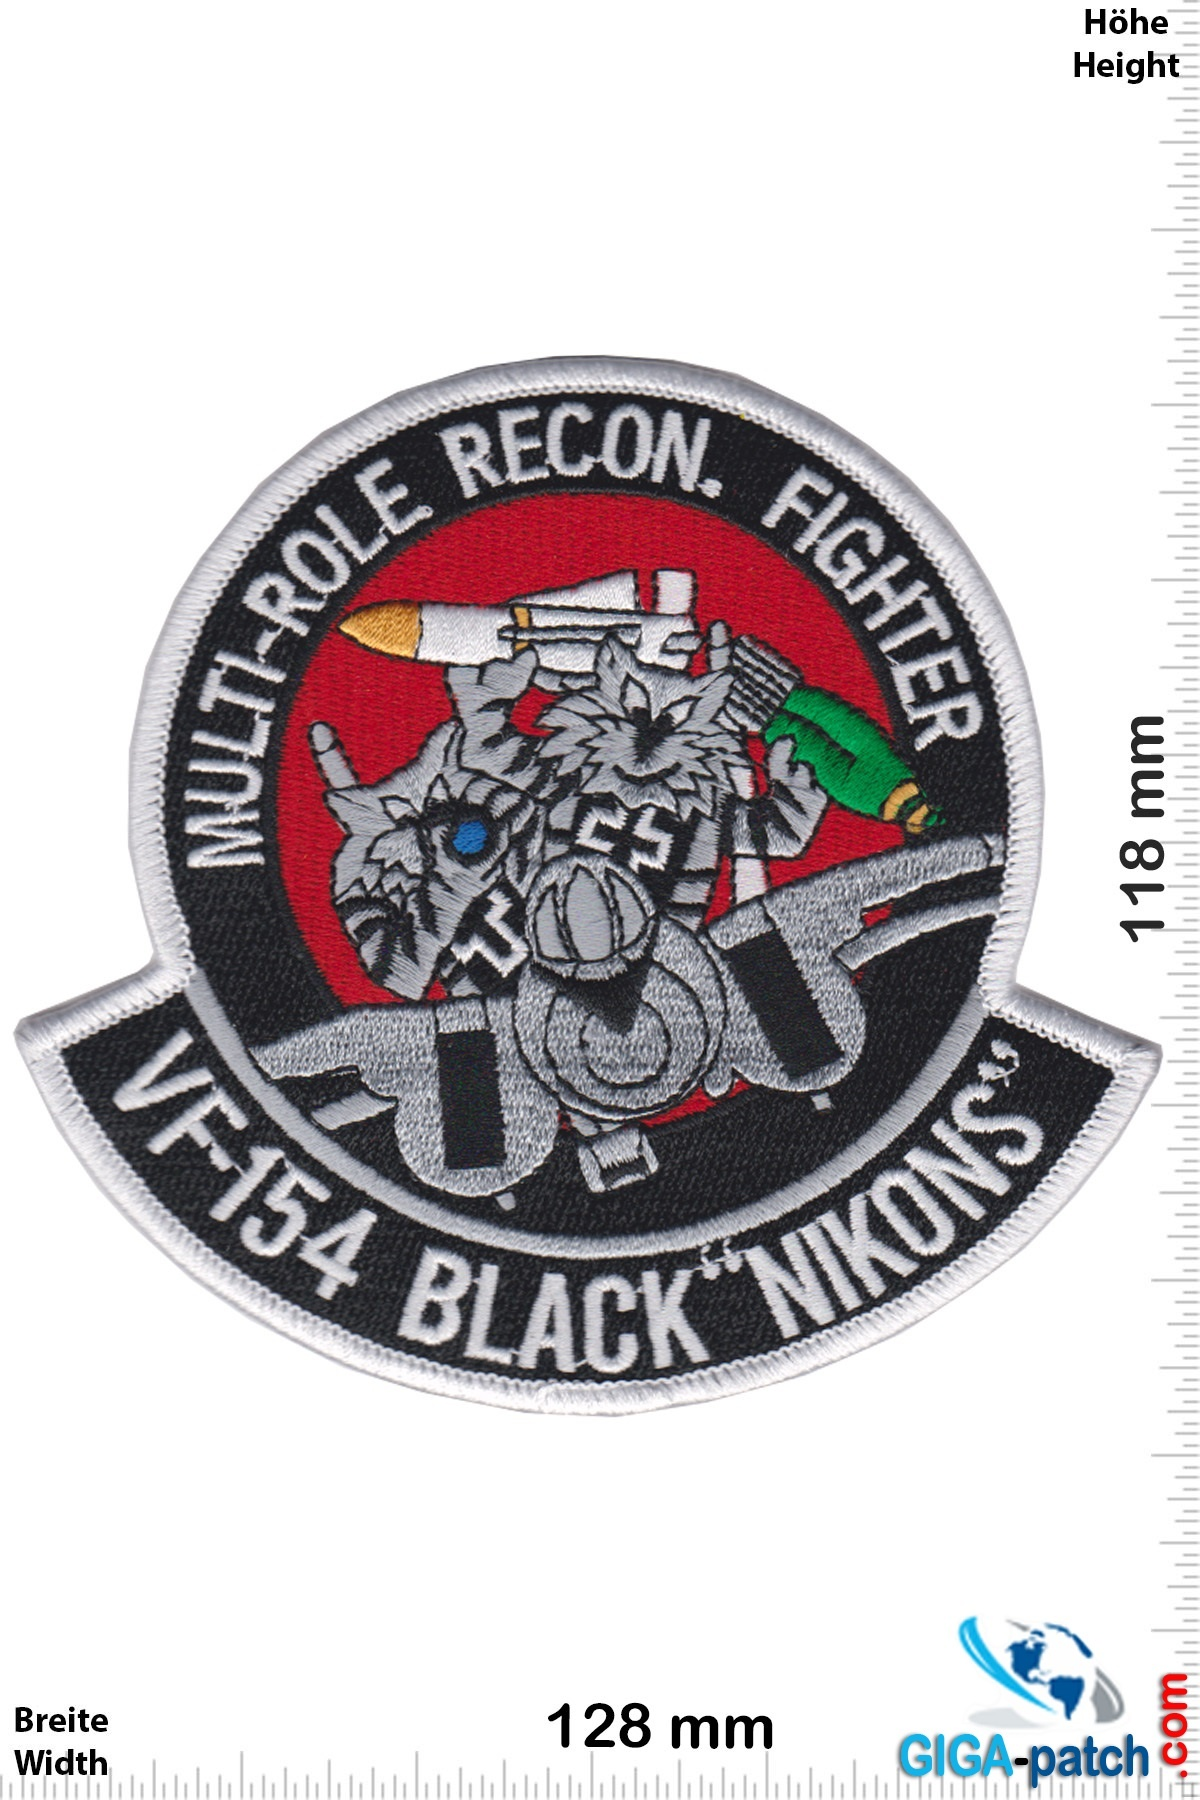 "U.S. Navy VF-154 Multi-Role Recon. Fighter - BLACK KNIGHTS - BLACK ""NIKONS"" - HQ"